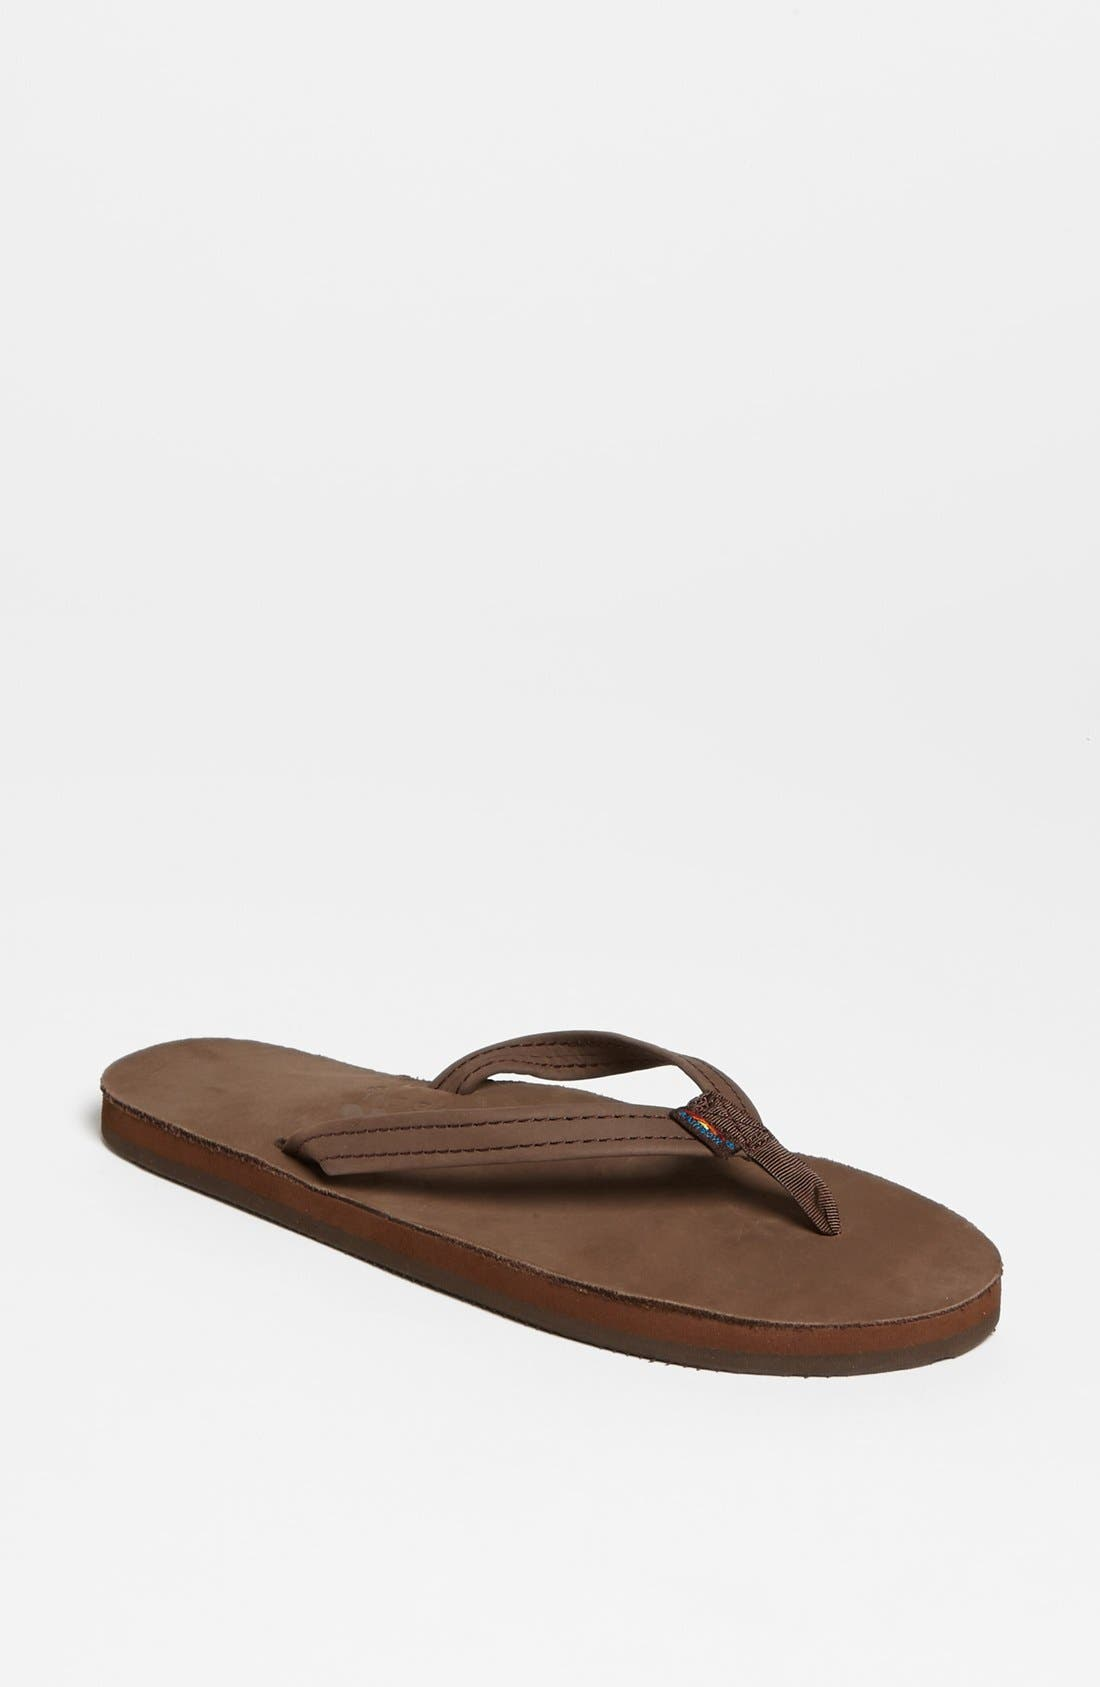 Narrow Strap Sandal,                         Main,                         color, Expresso